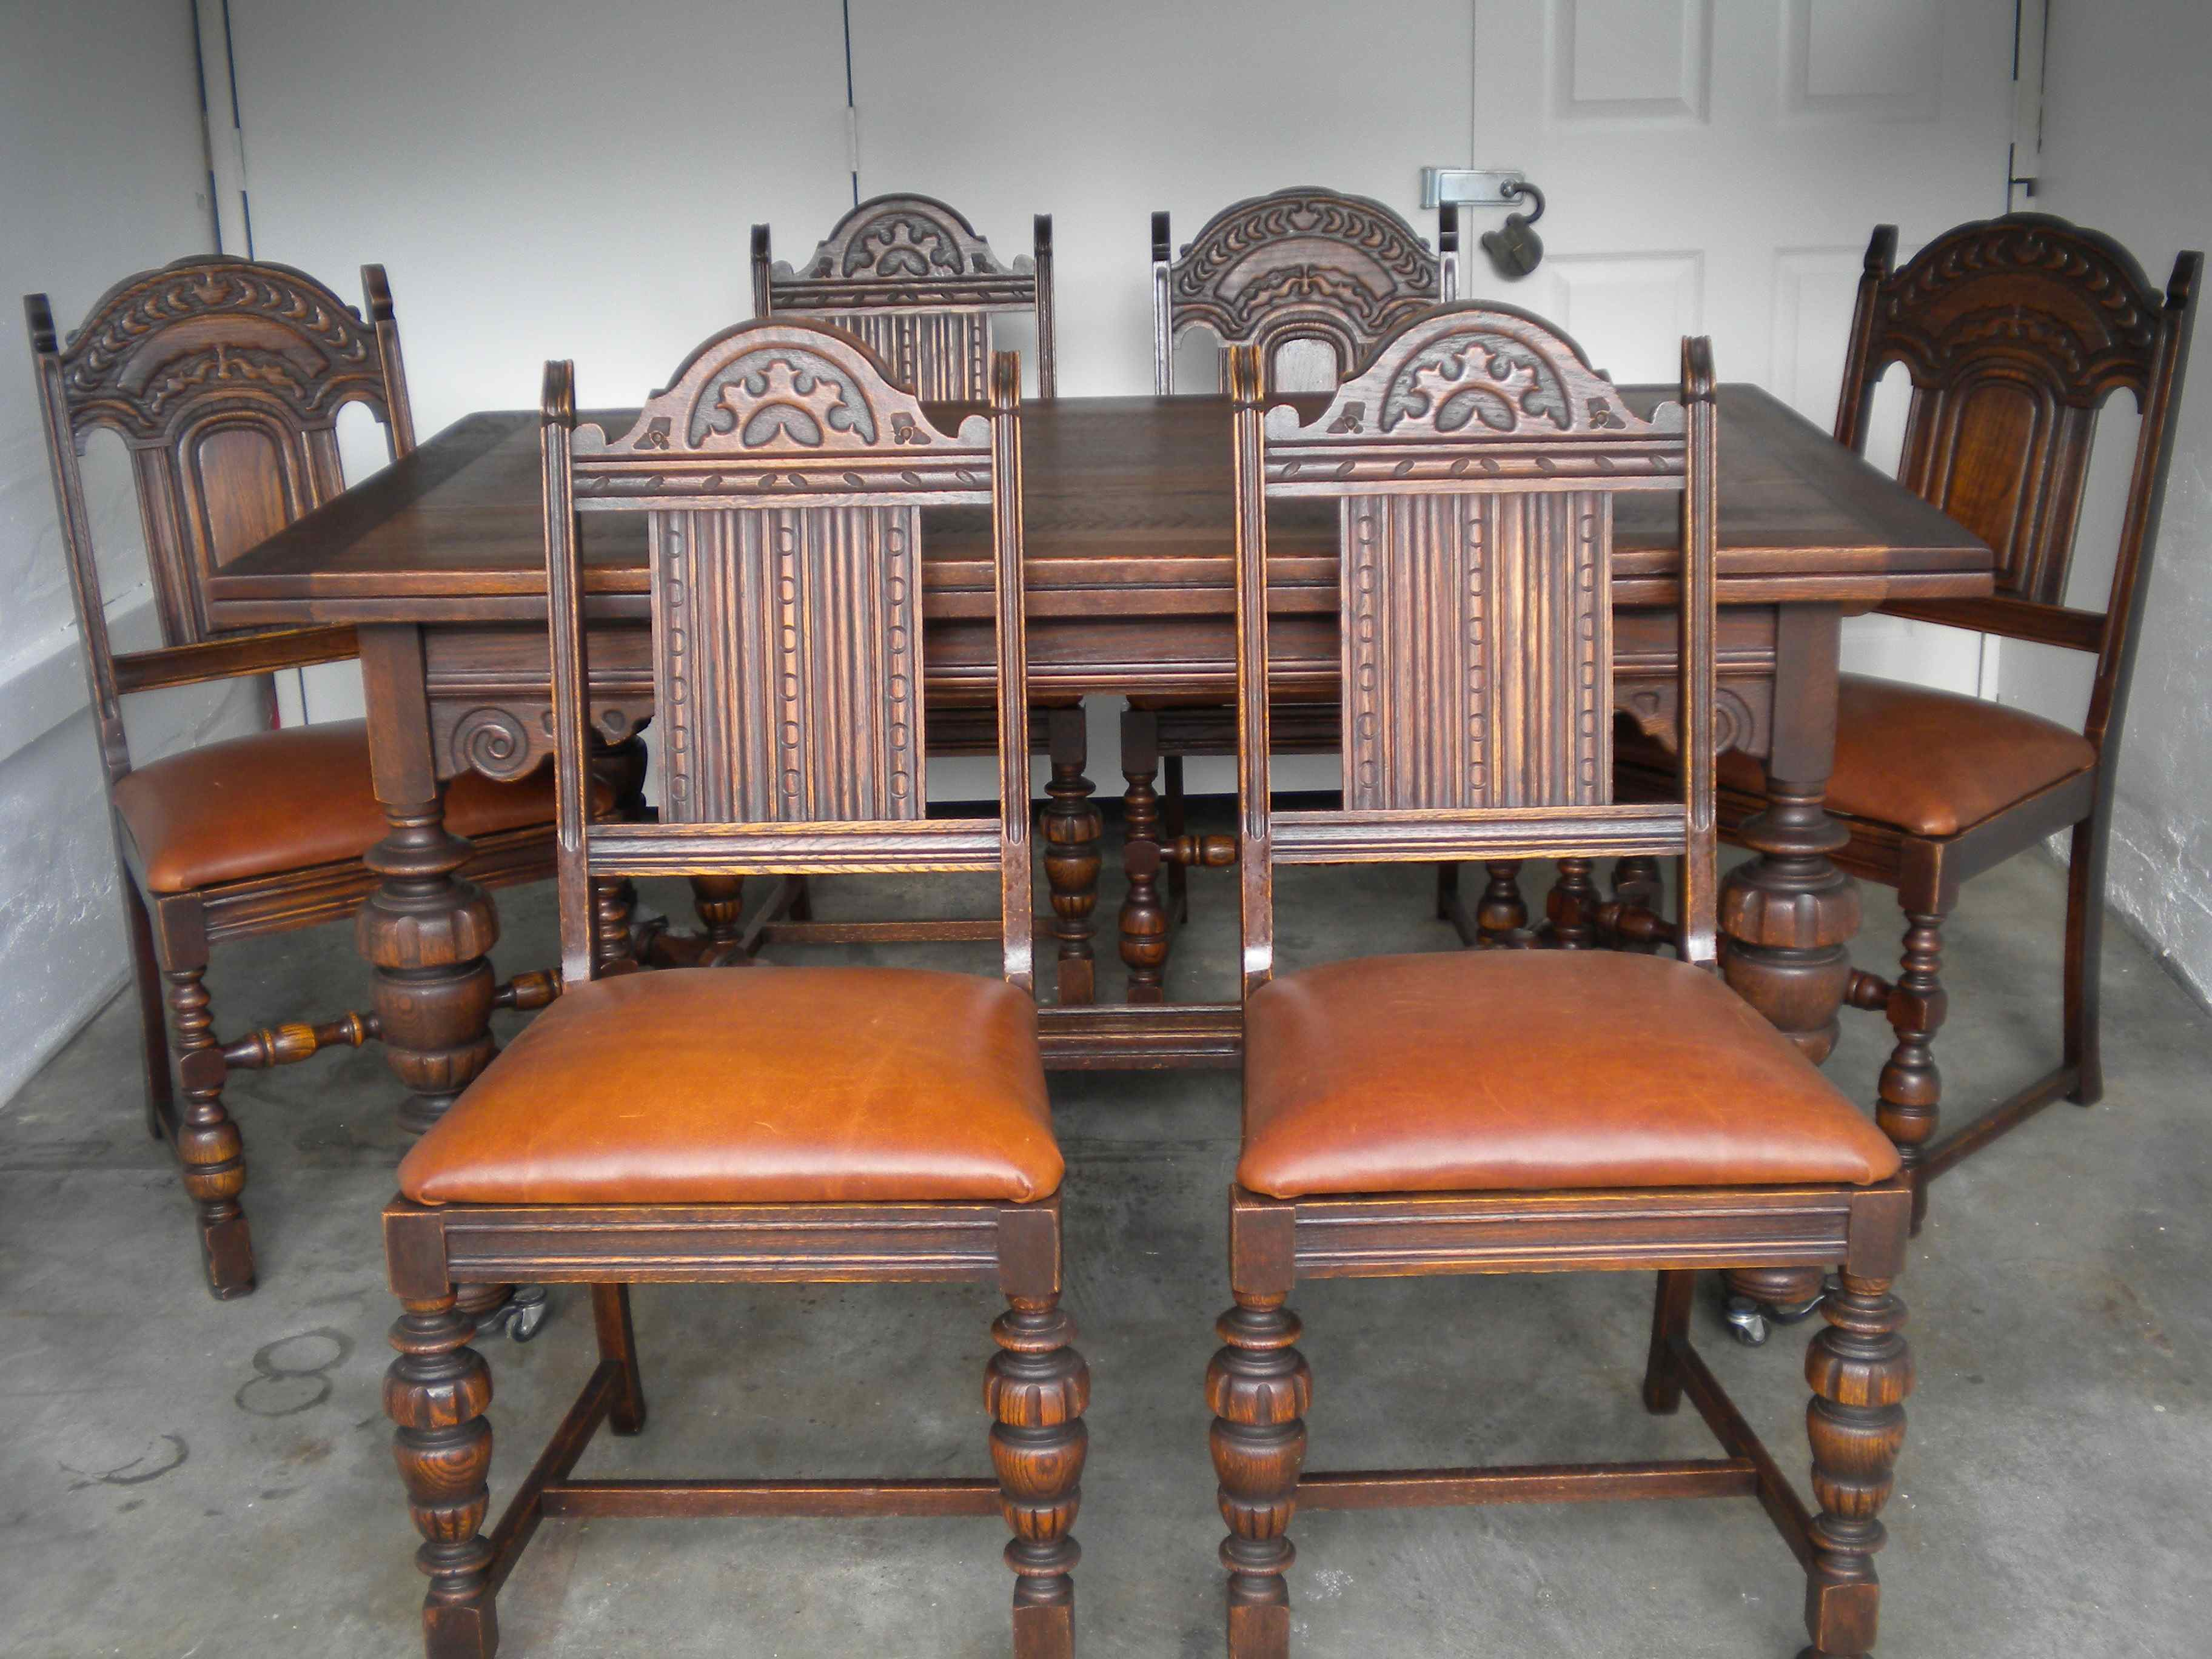 Antique English Oak Dining Table And 6 Chairs With Leather